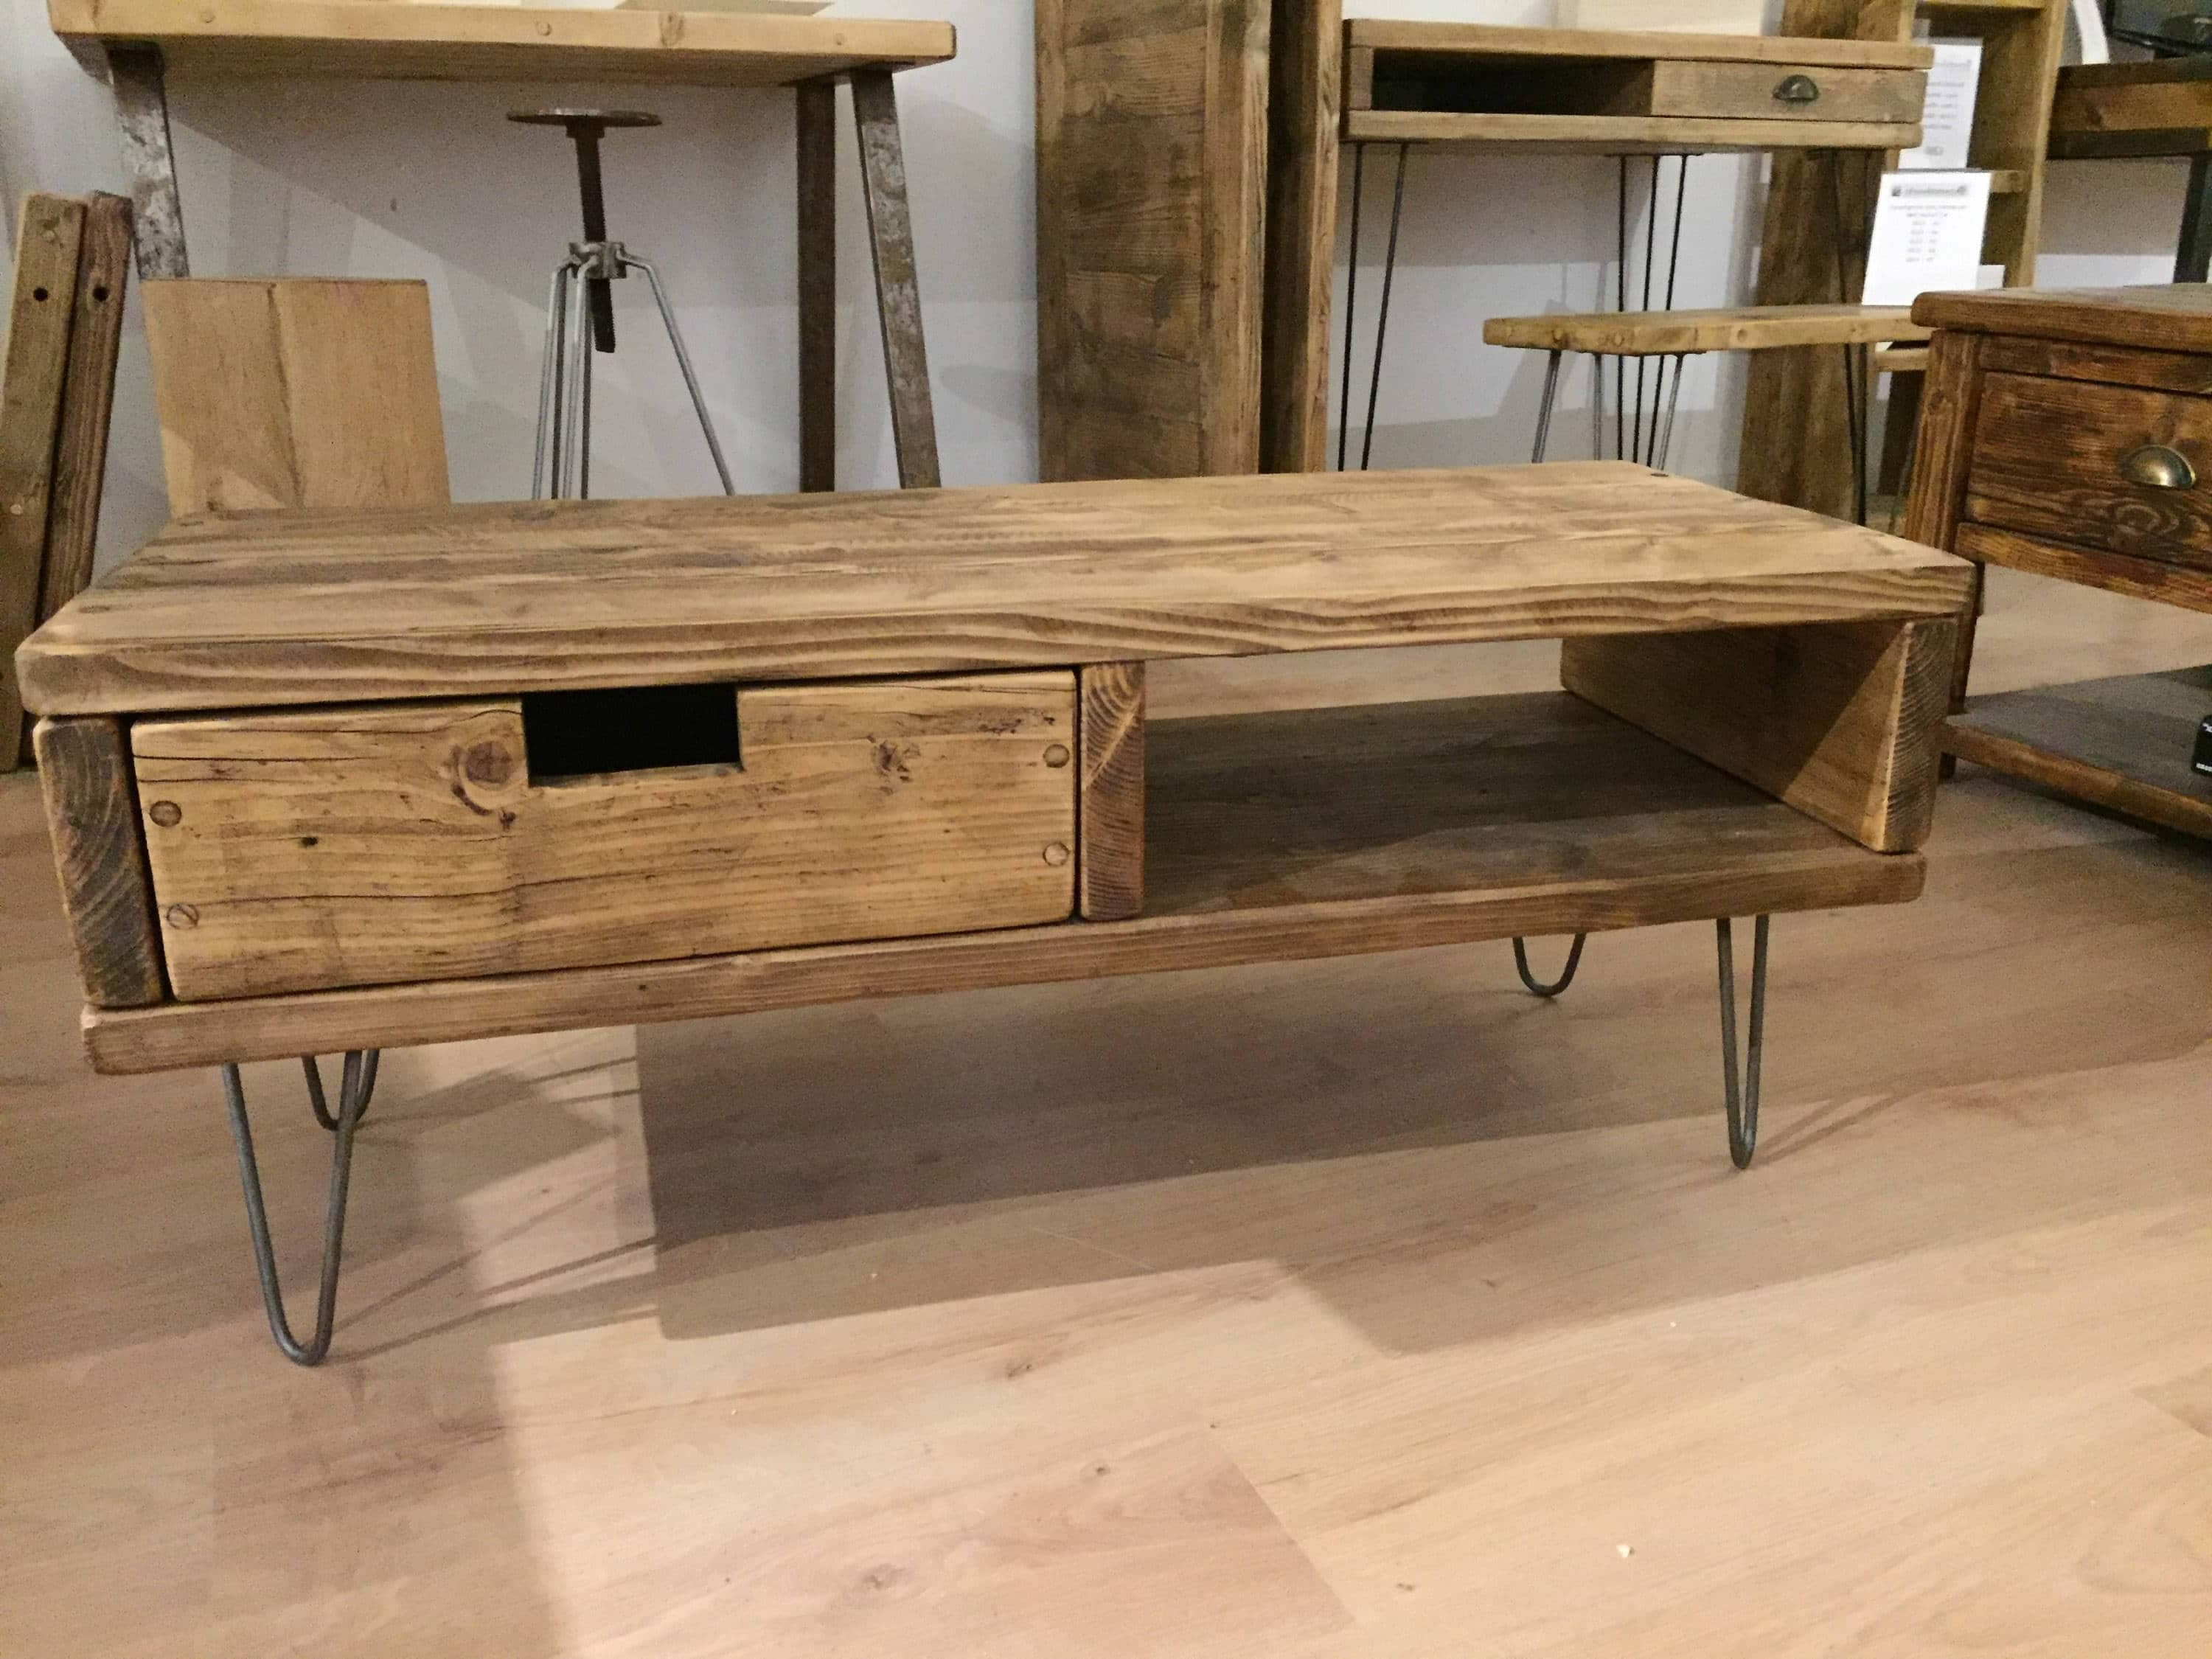 Solid Pine Box Tv Stand With Drawer And Hairpin Legs – Newco Inside Current Hairpin Leg Tv Stands (Gallery 4 of 20)